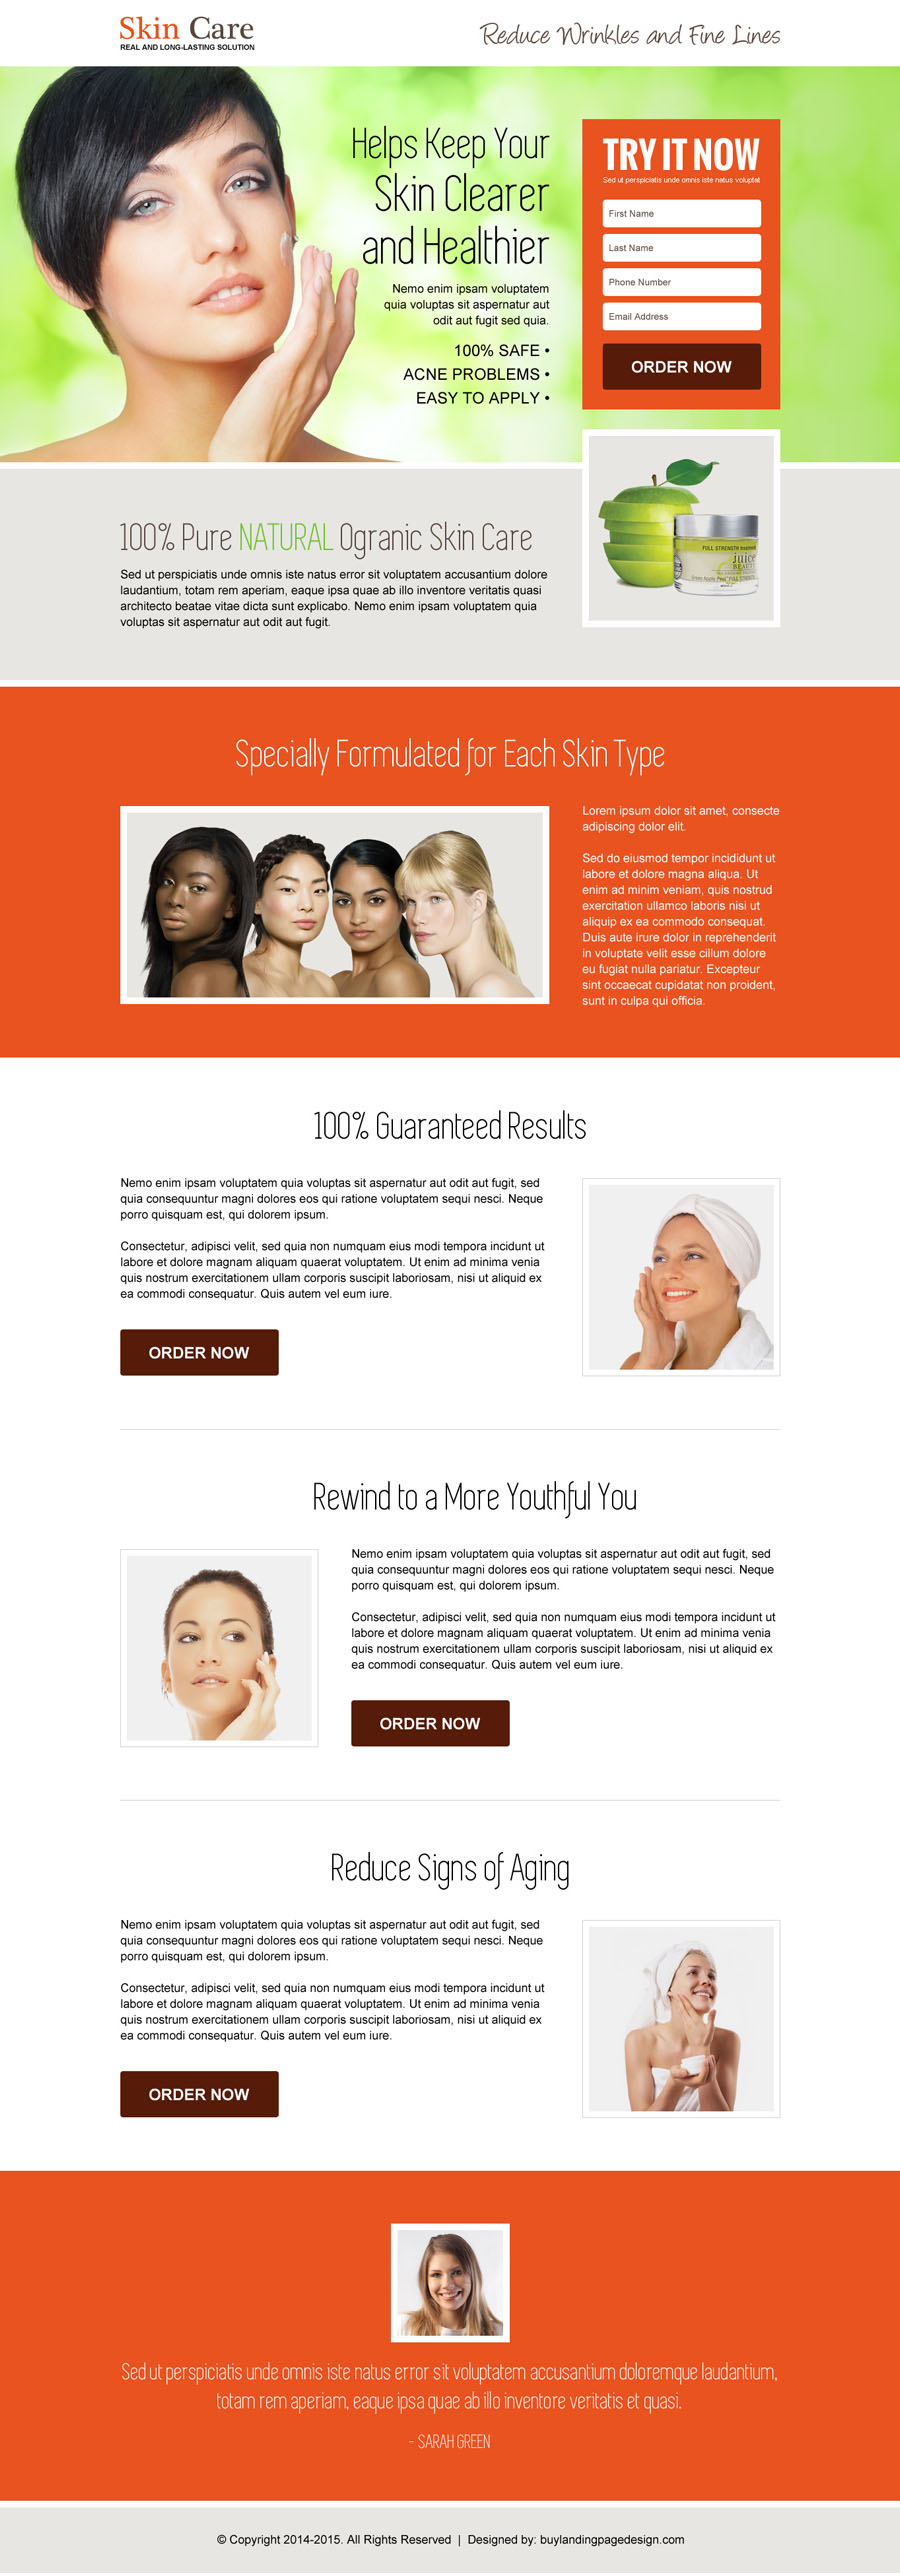 youthful-and-glowing-skin-care-product-selling-lead-capture-converting-landing-page-design-template-019